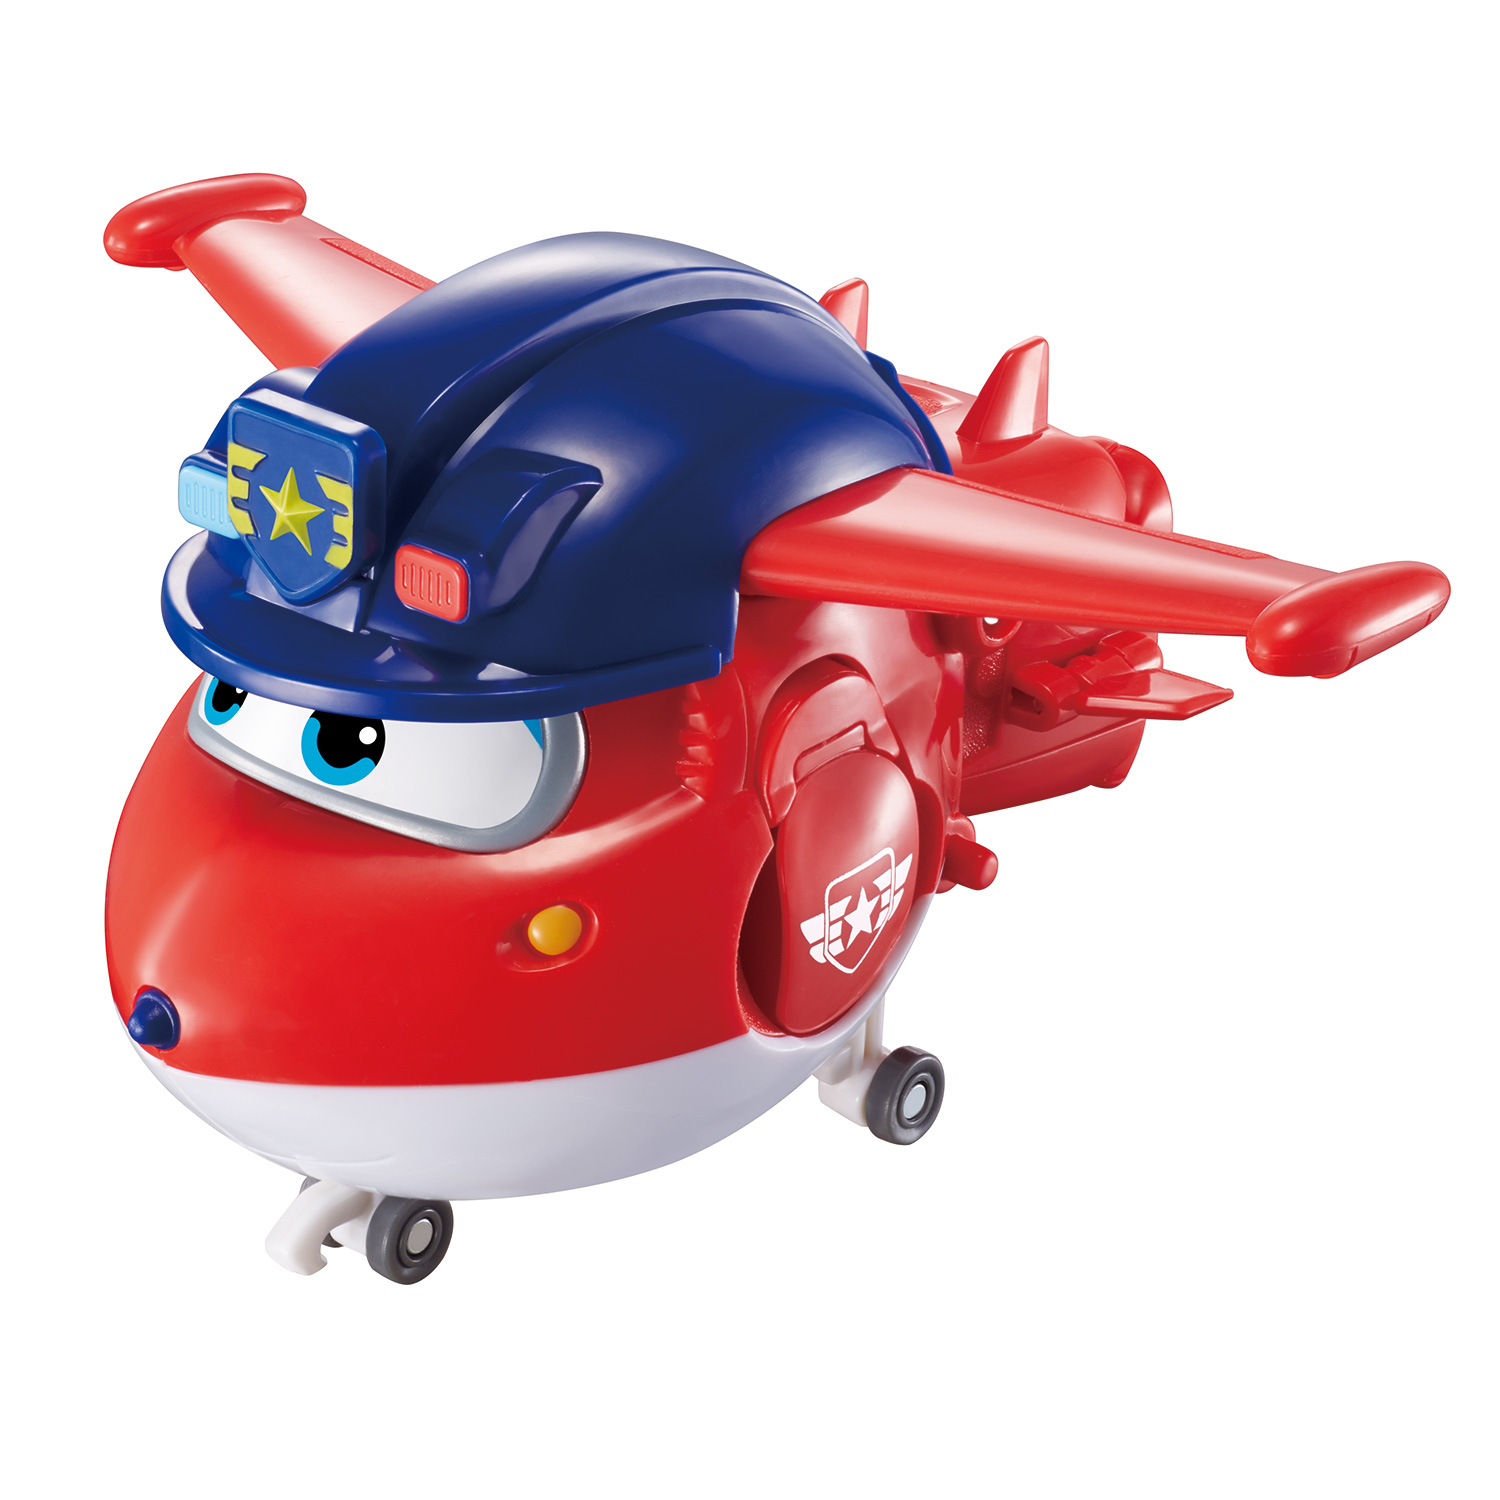 Купить Трансформер Super Wings Джетт (команда Полиции), Super Wings - Супер Крылья